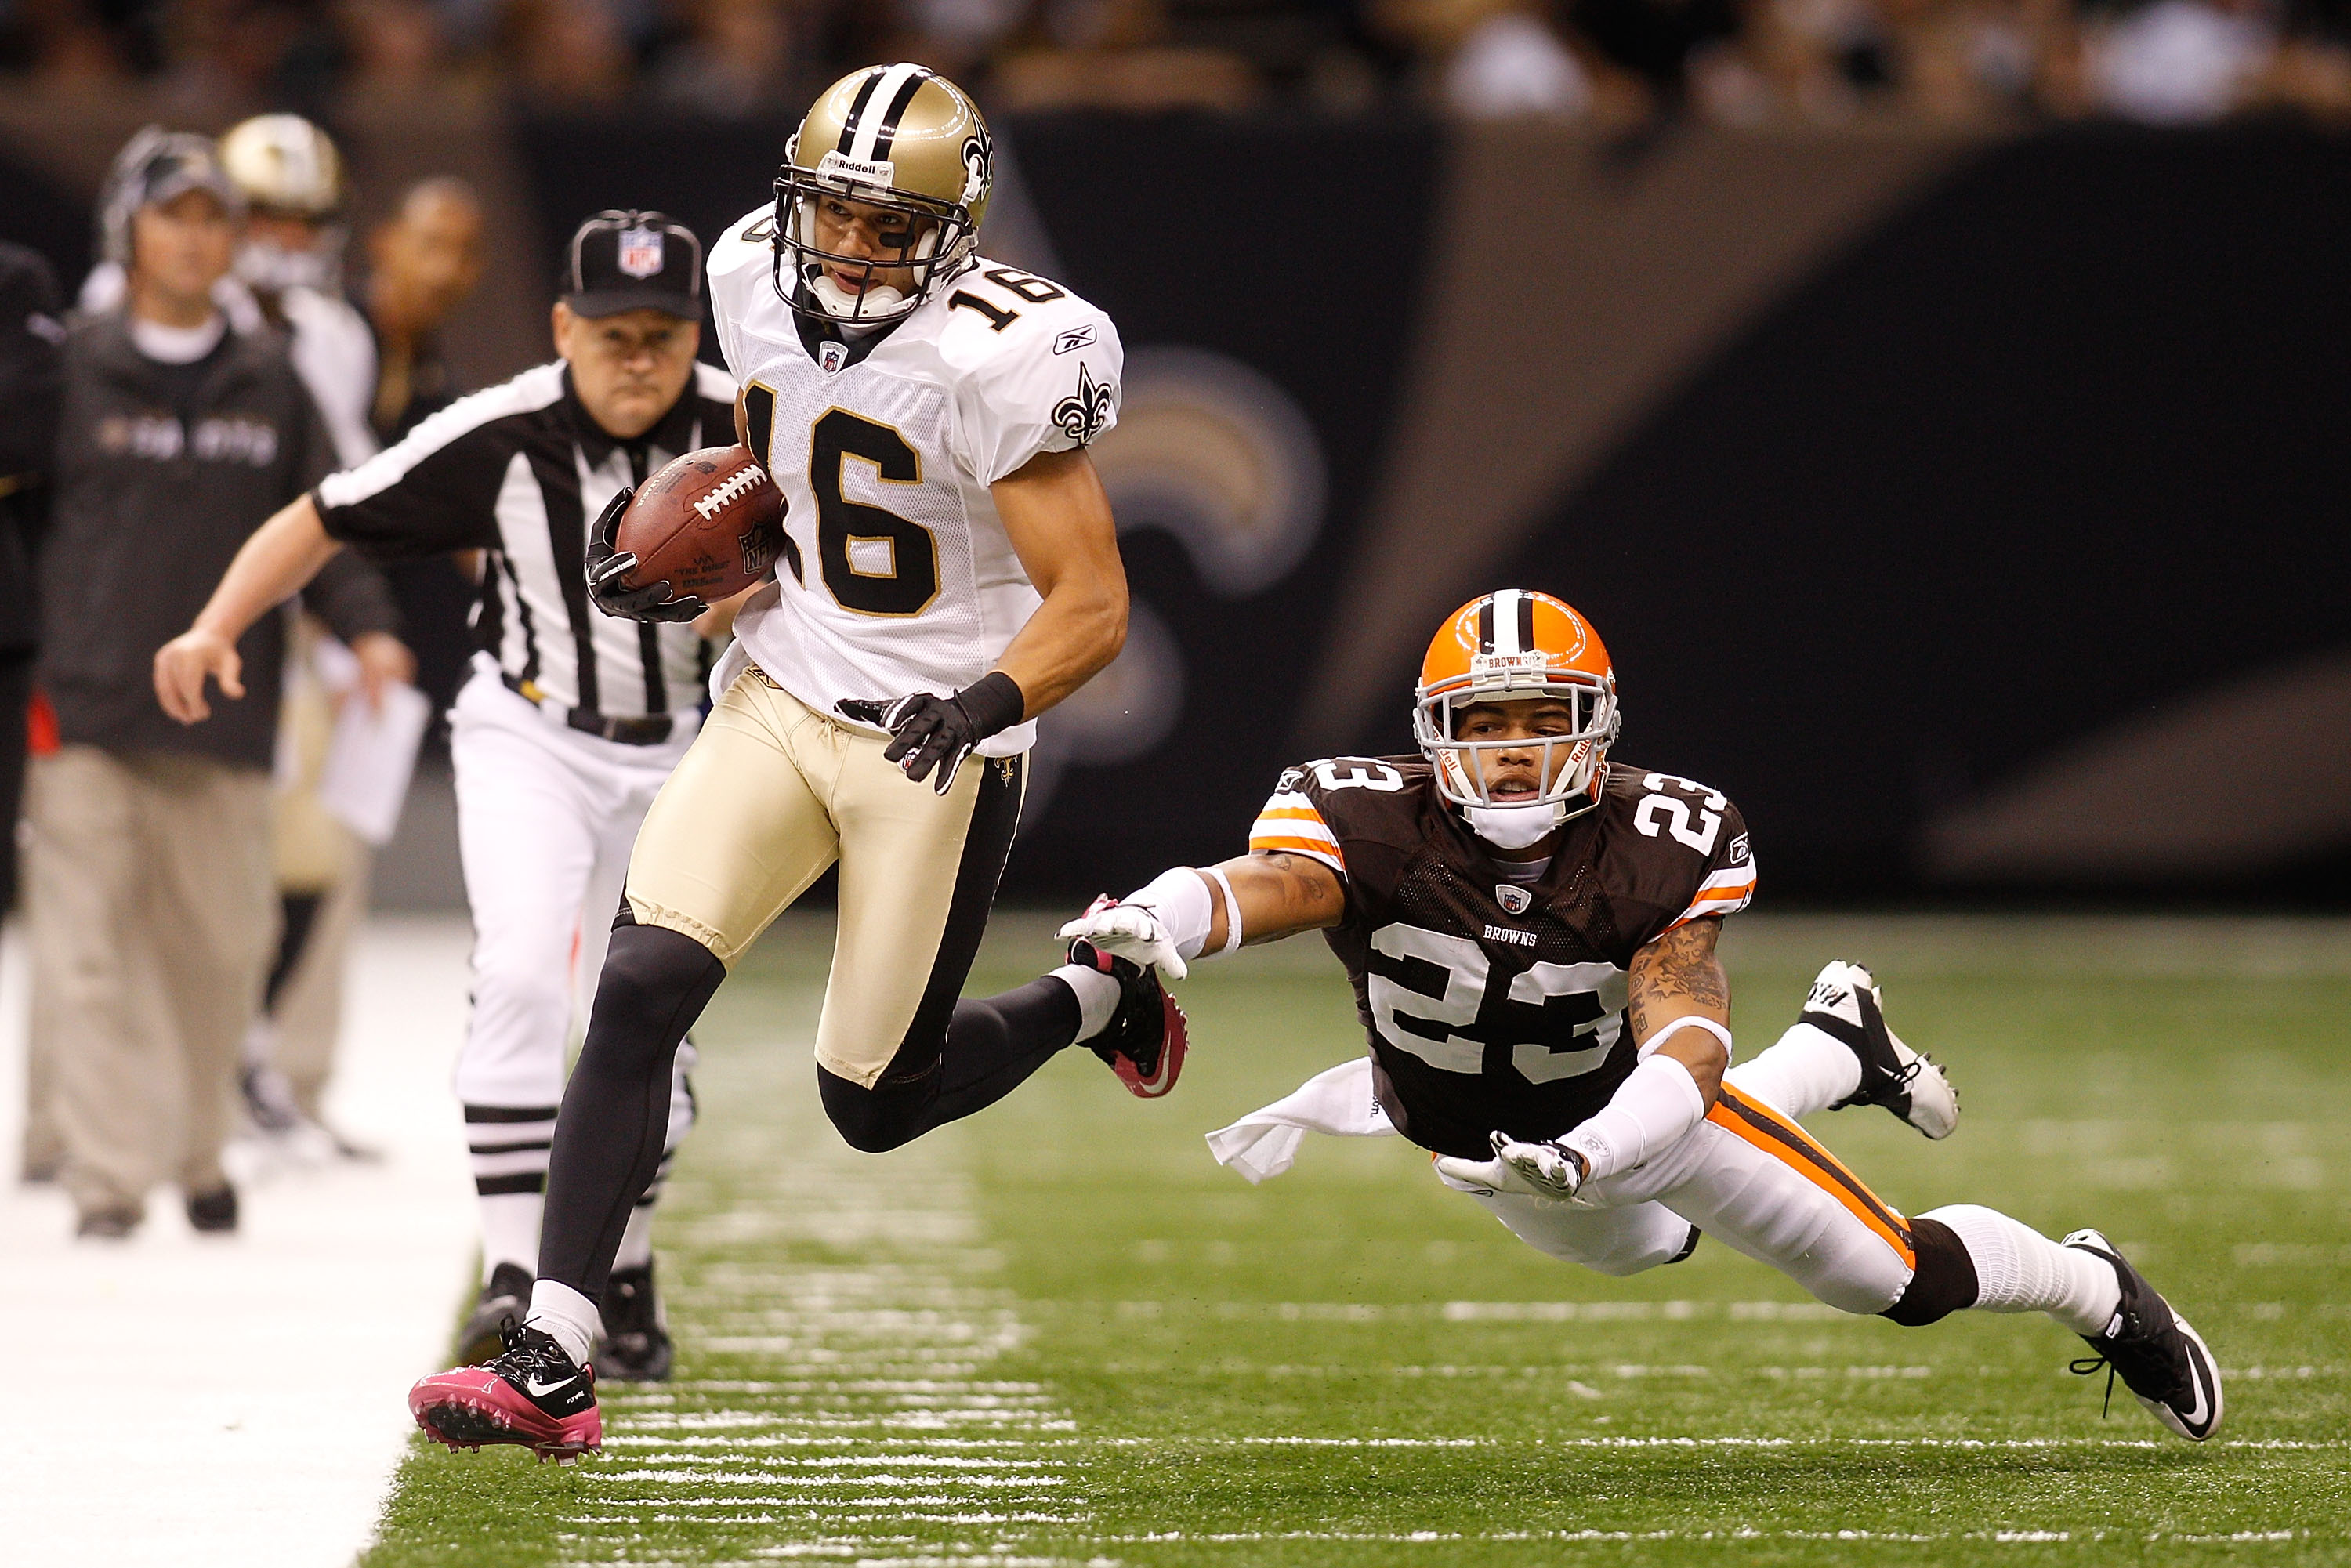 NEW ORLEANS - OCTOBER 24:  Lance Moore #16 of the New Orleans Saints in action during the game against the Cleveland Browns at the Louisiana Superdome on October 24, 2010 in New Orleans, Louisiana.  (Photo by Chris Graythen/Getty Images)